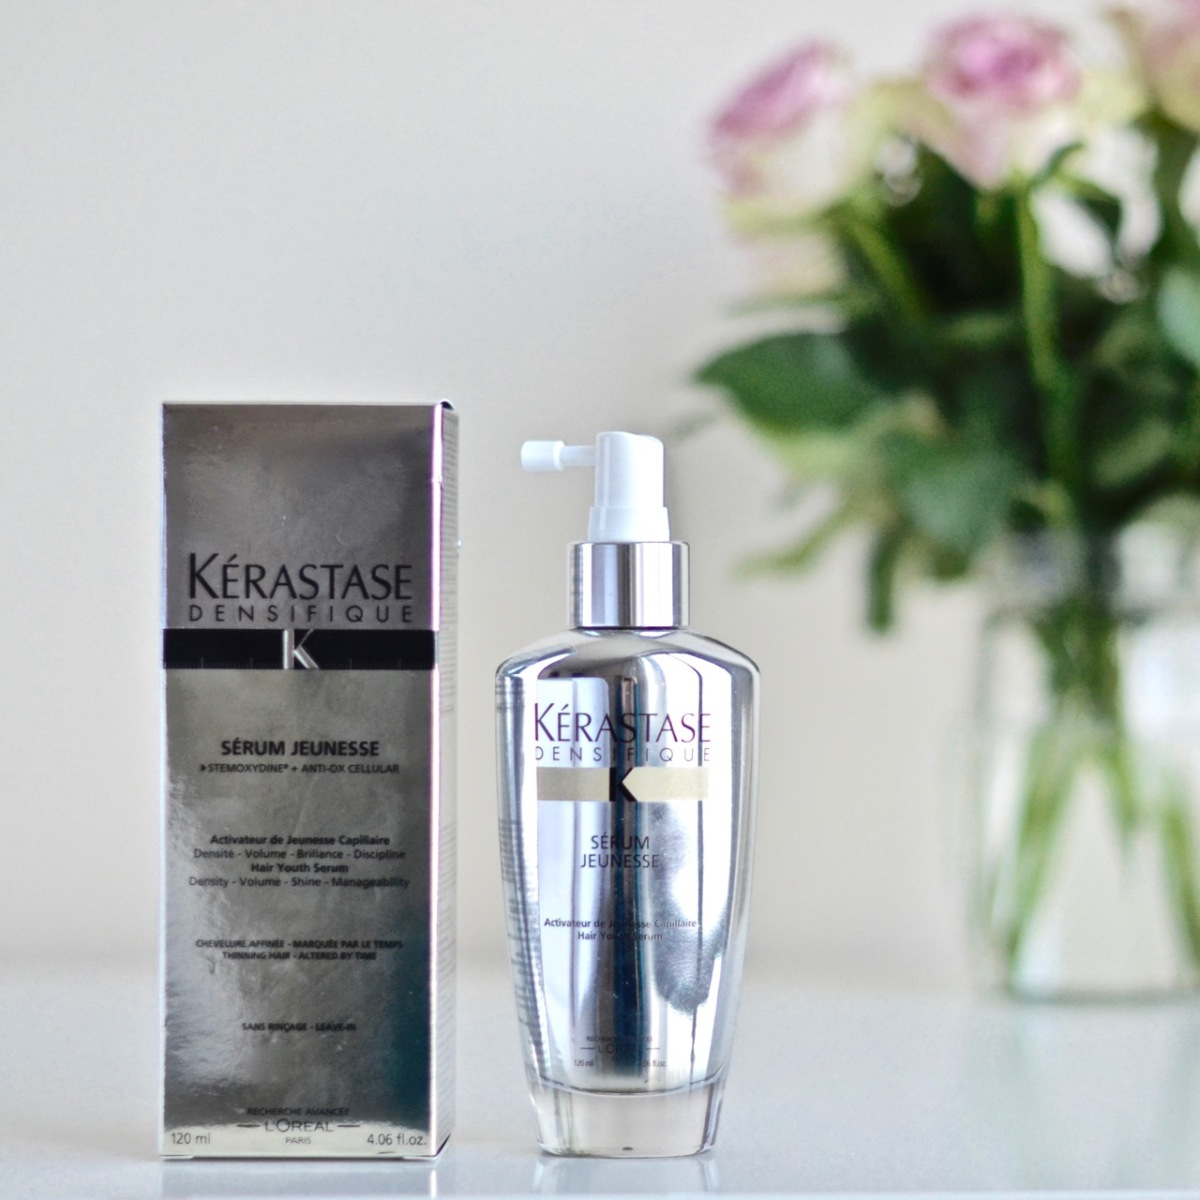 Kérastase Densifique, Serum Jeunesse Review